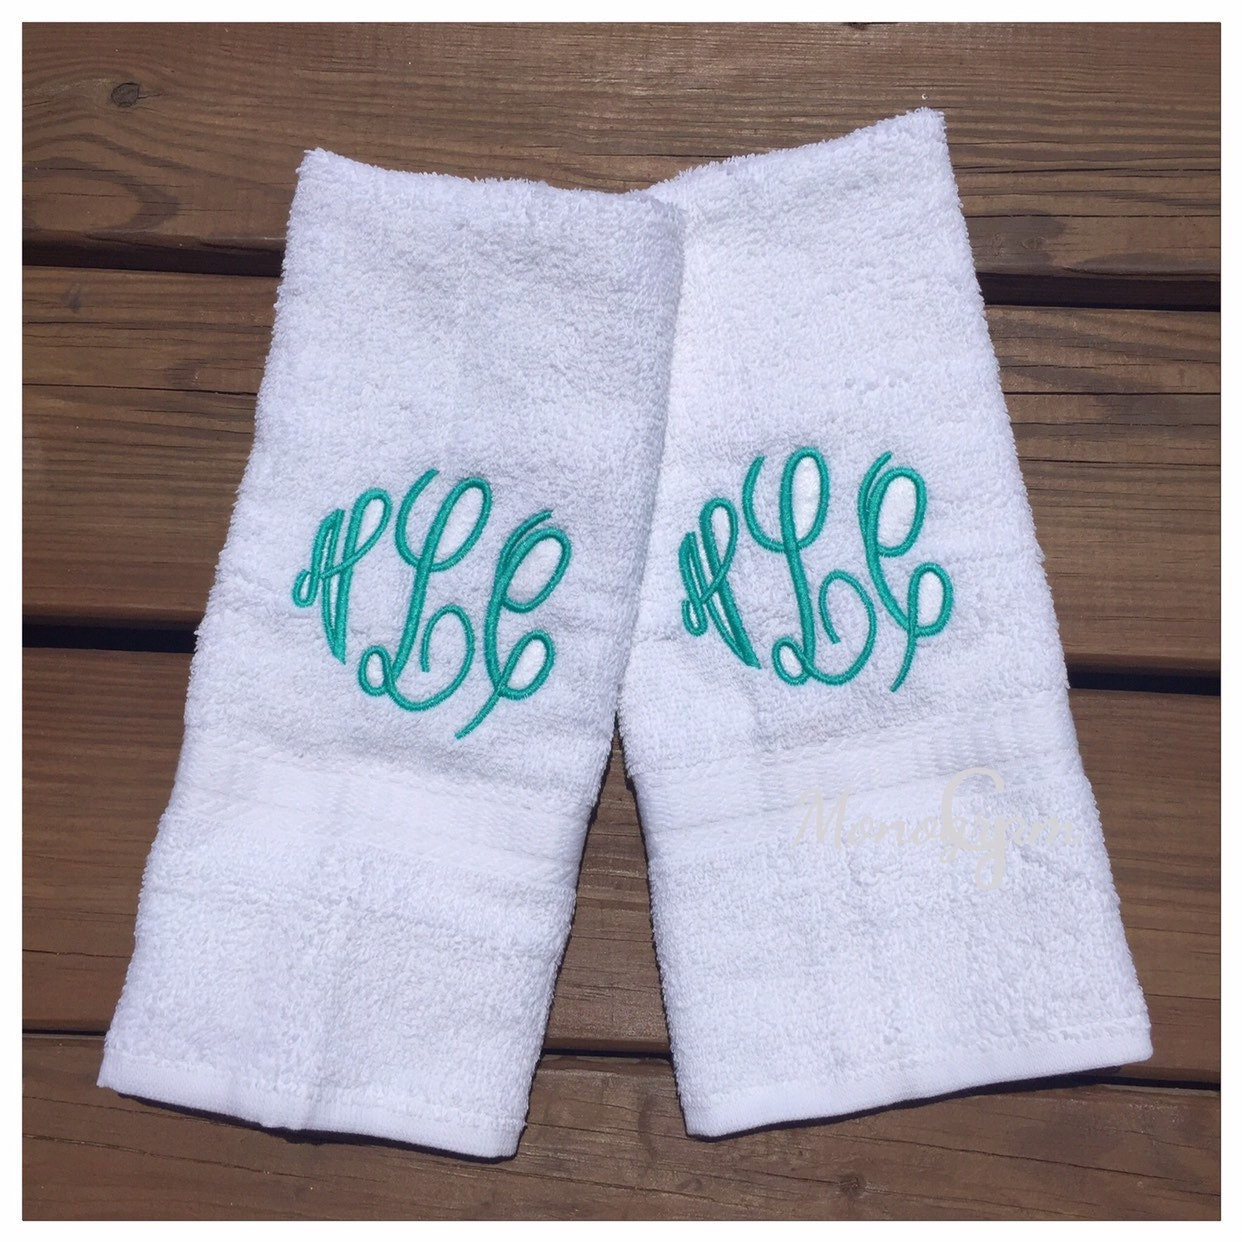 Monogrammed Hand Towel Set/ Monogrammed Towel Set/